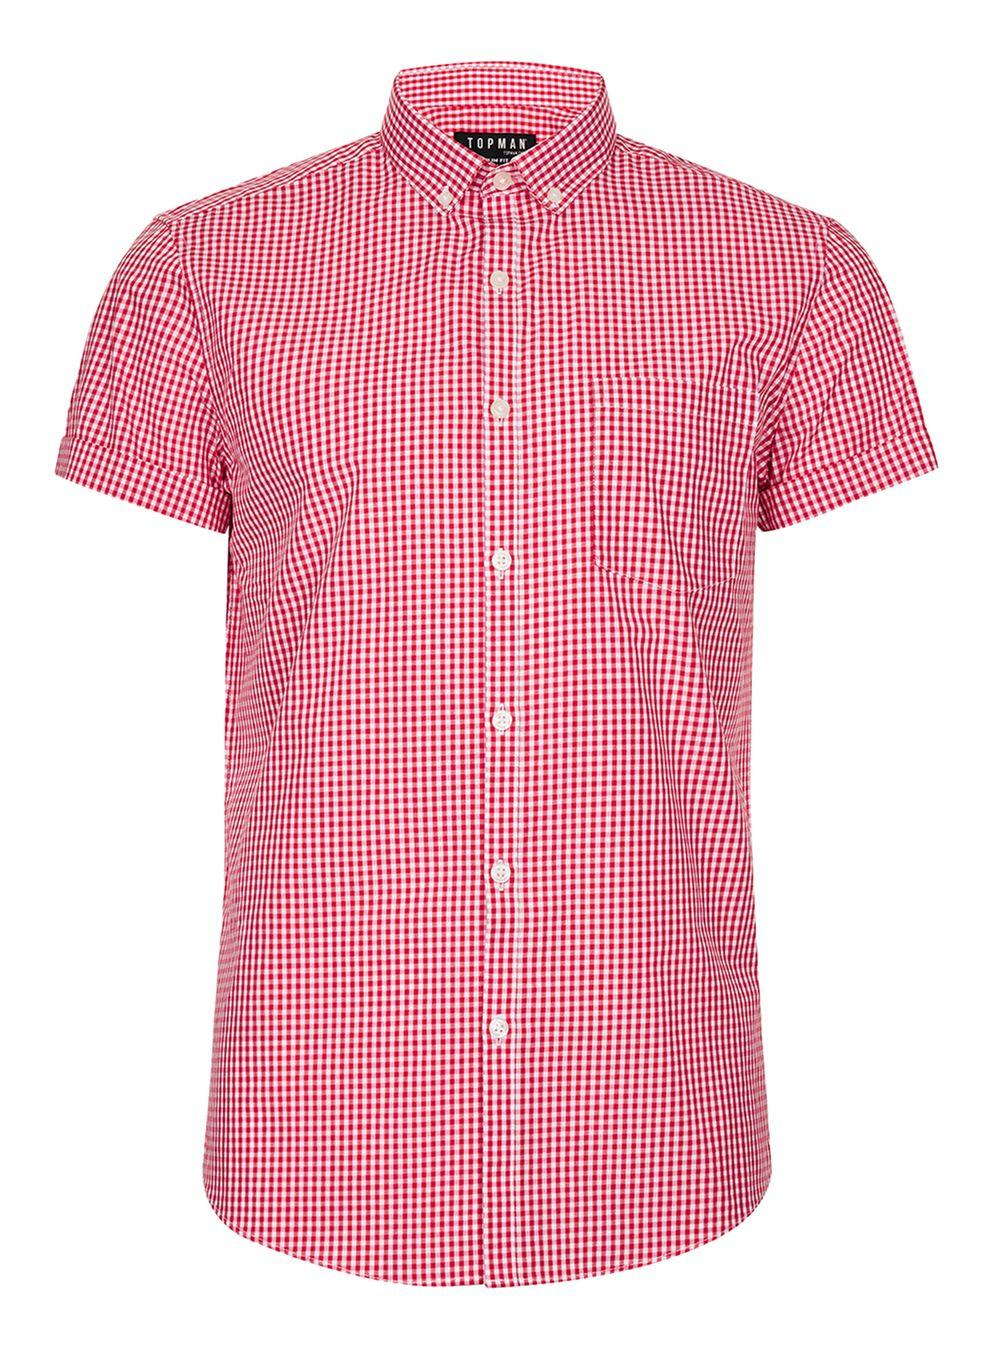 topman red and white gingham smart shirt in red for men lyst